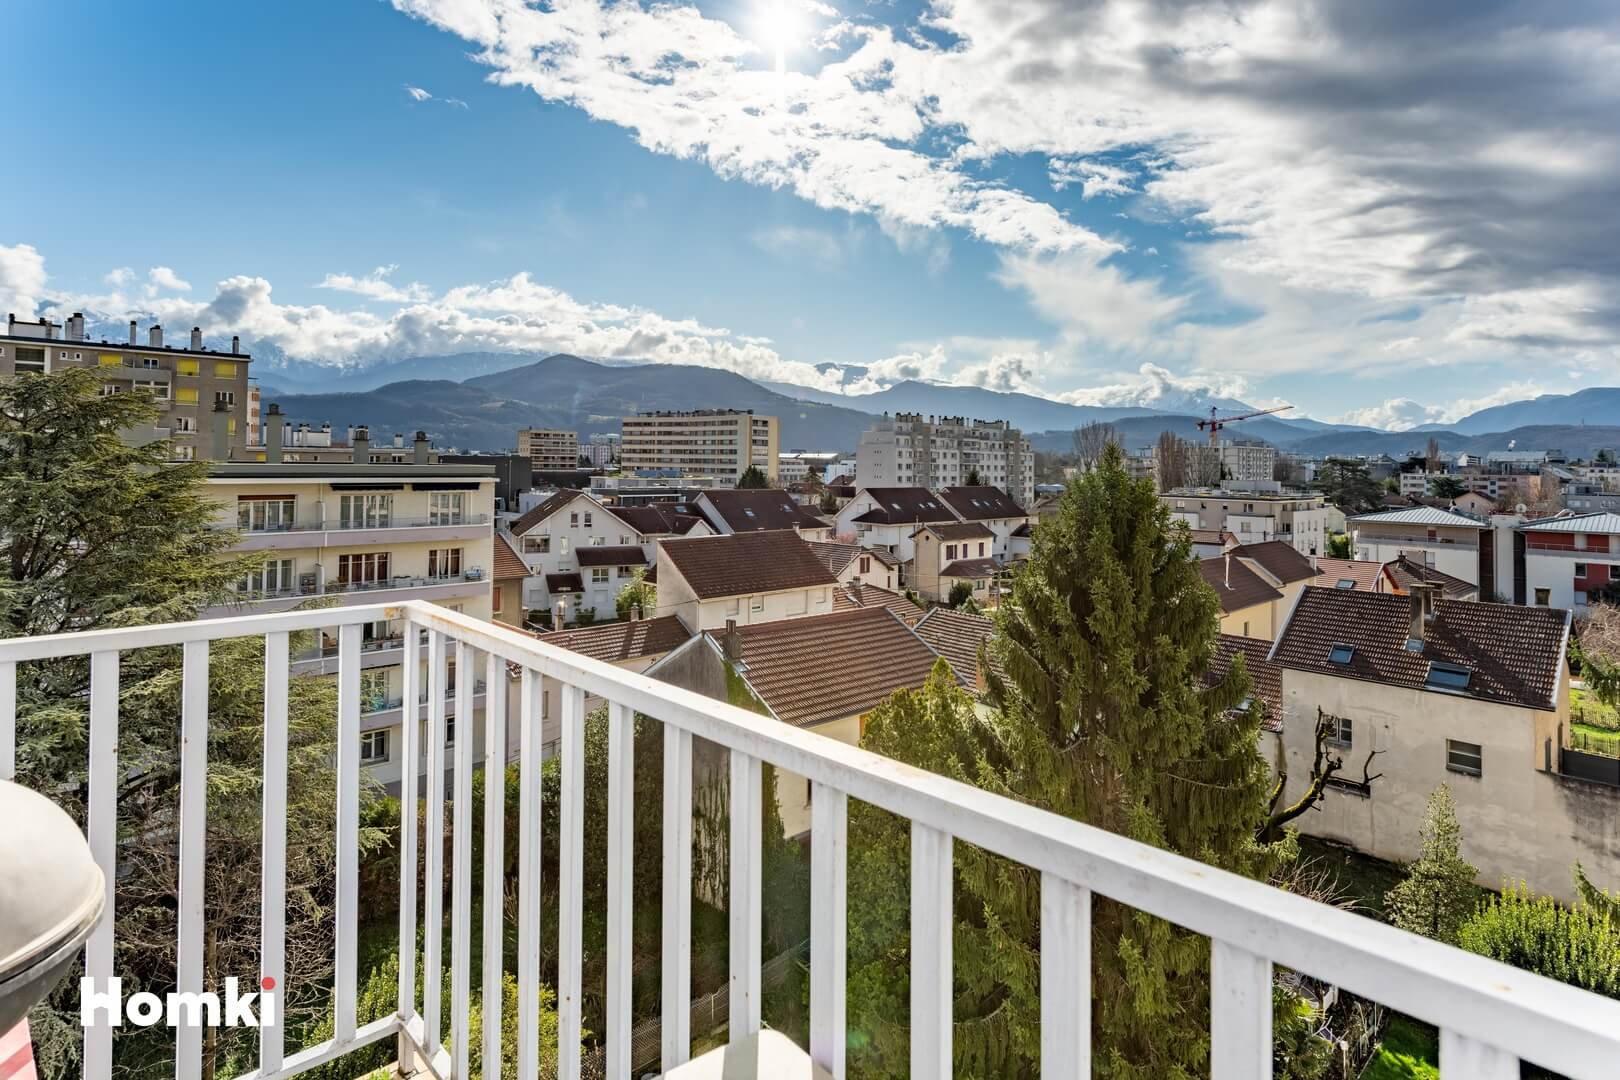 Homki - Vente appartement  de 150.0 m² à Grenoble 38100